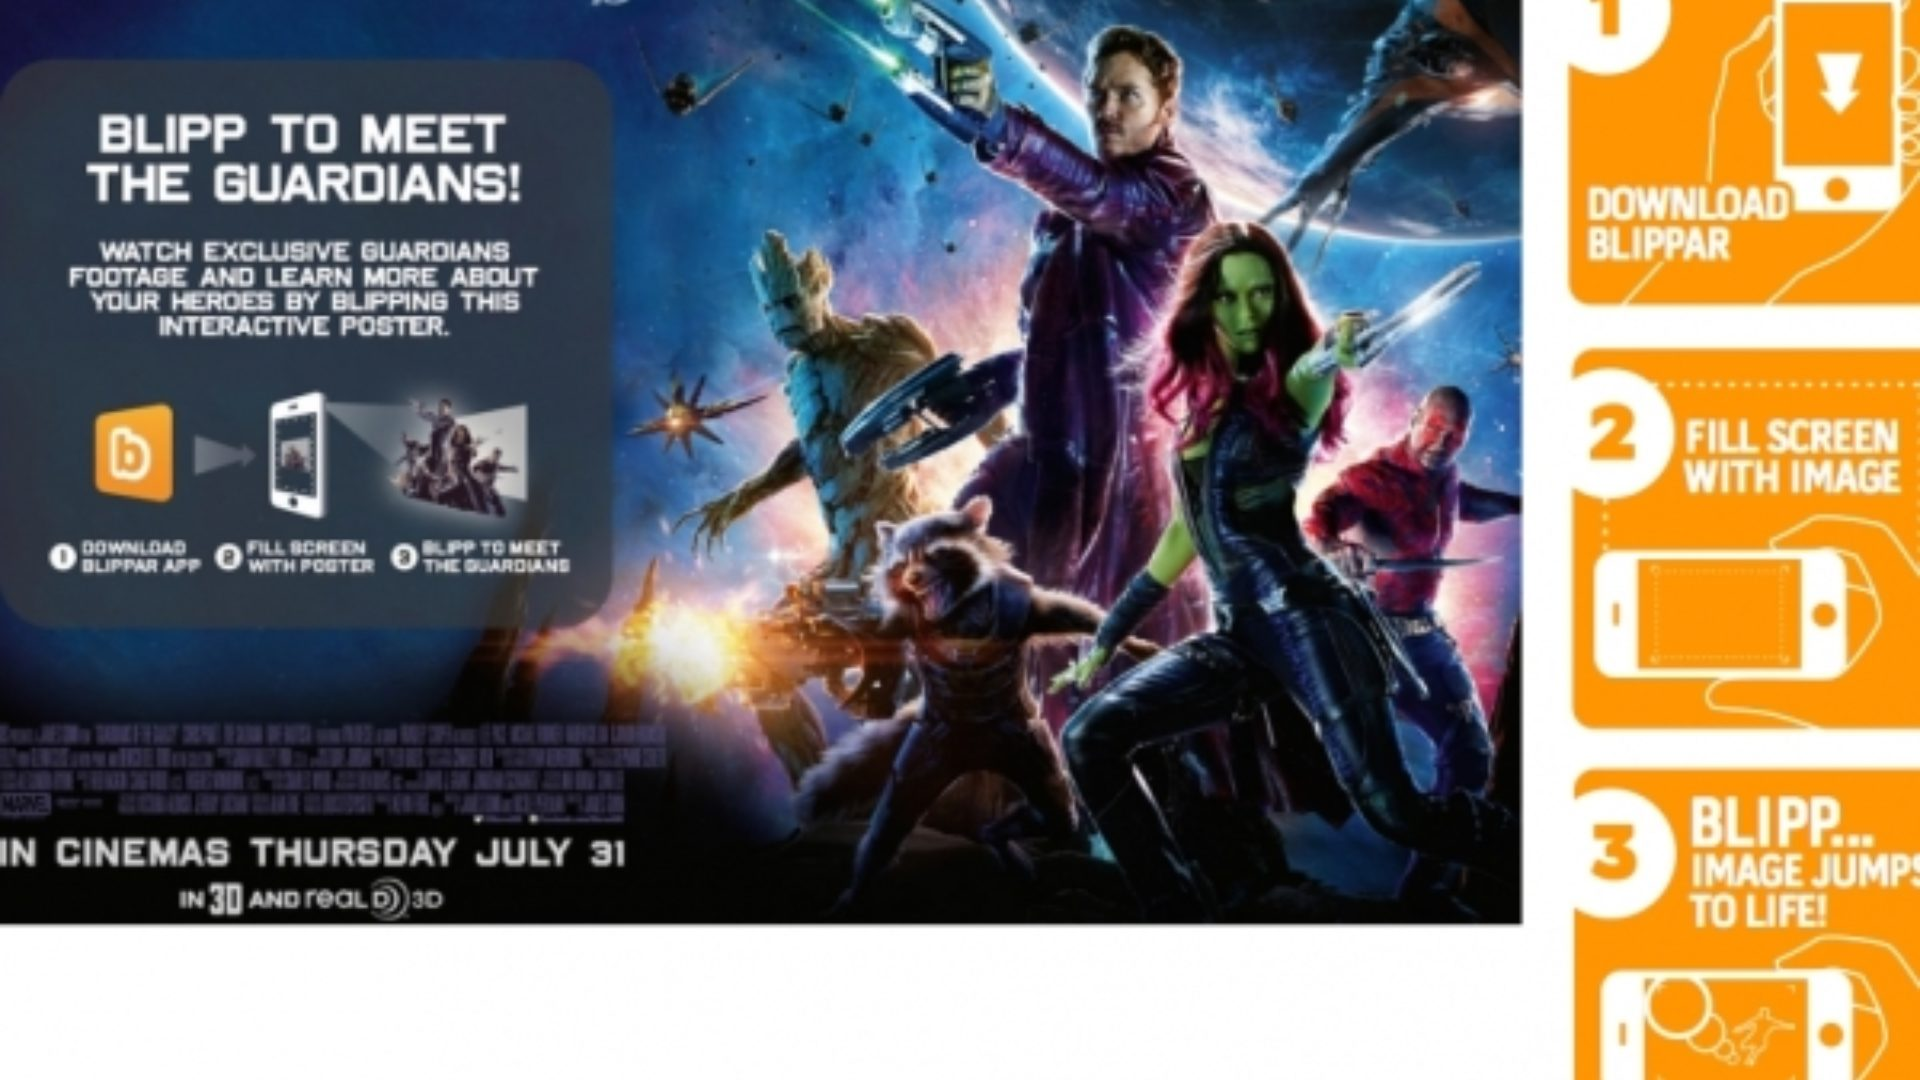 meet the guardians of the galaxy they re hiding in this movie